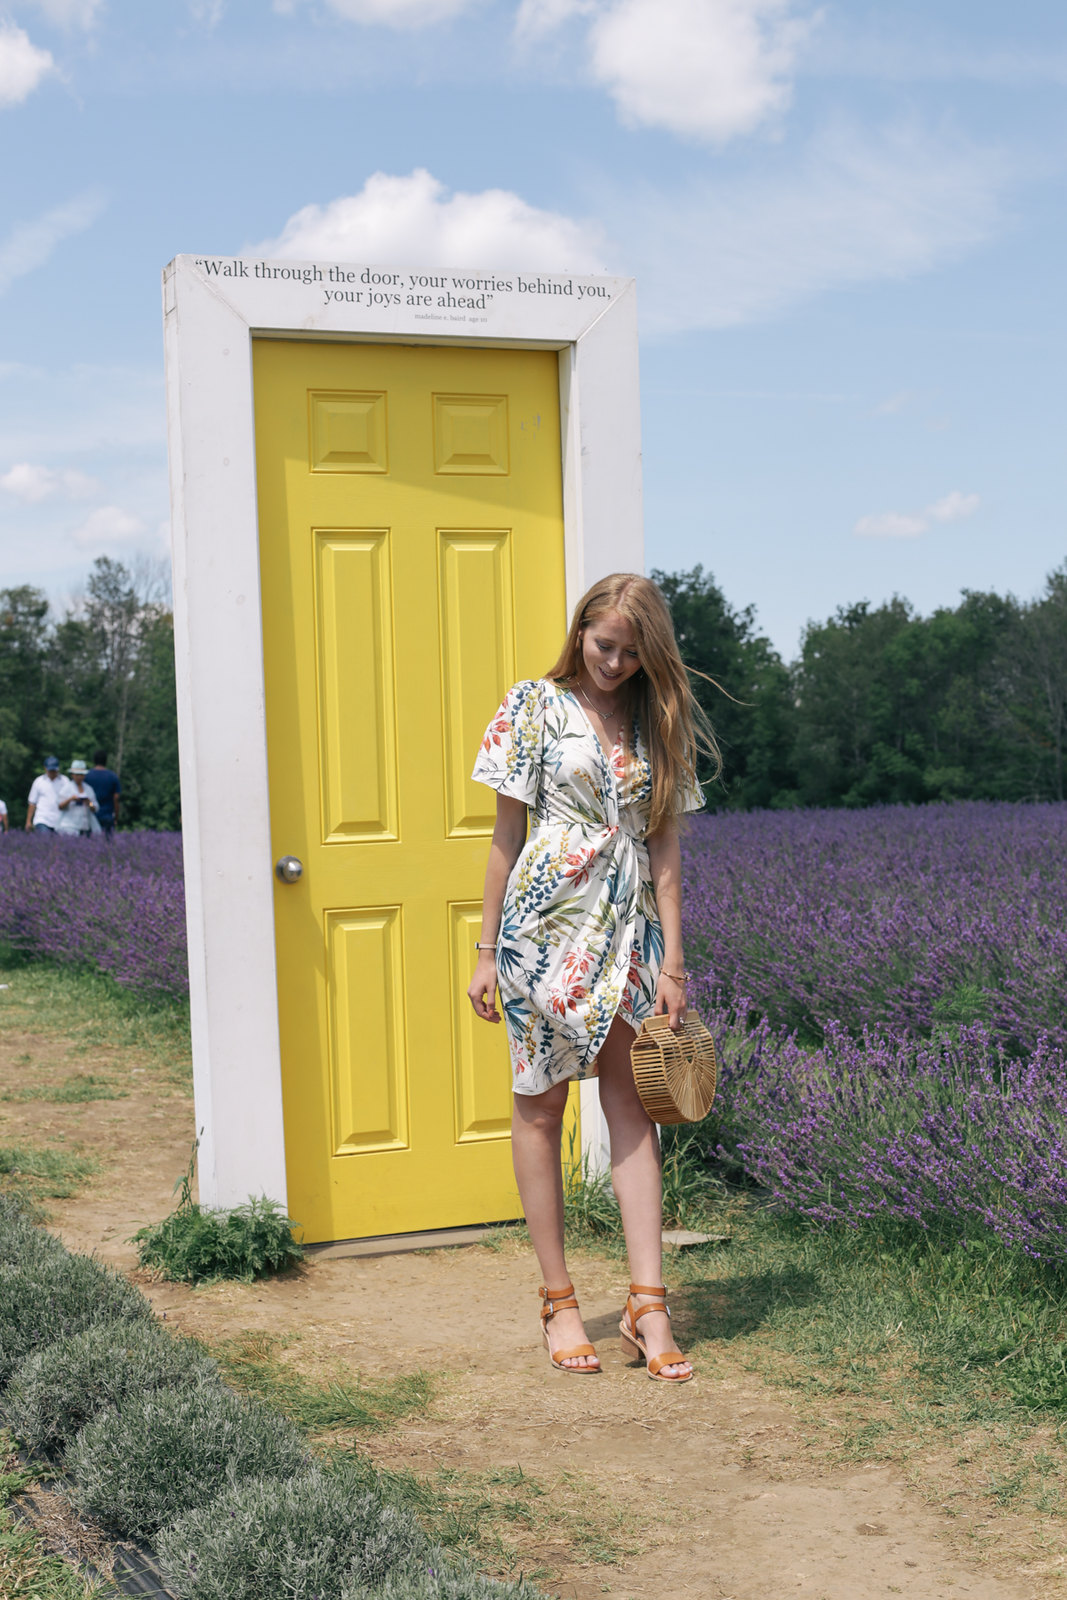 Terre Bleu Lavender Farm yellow door